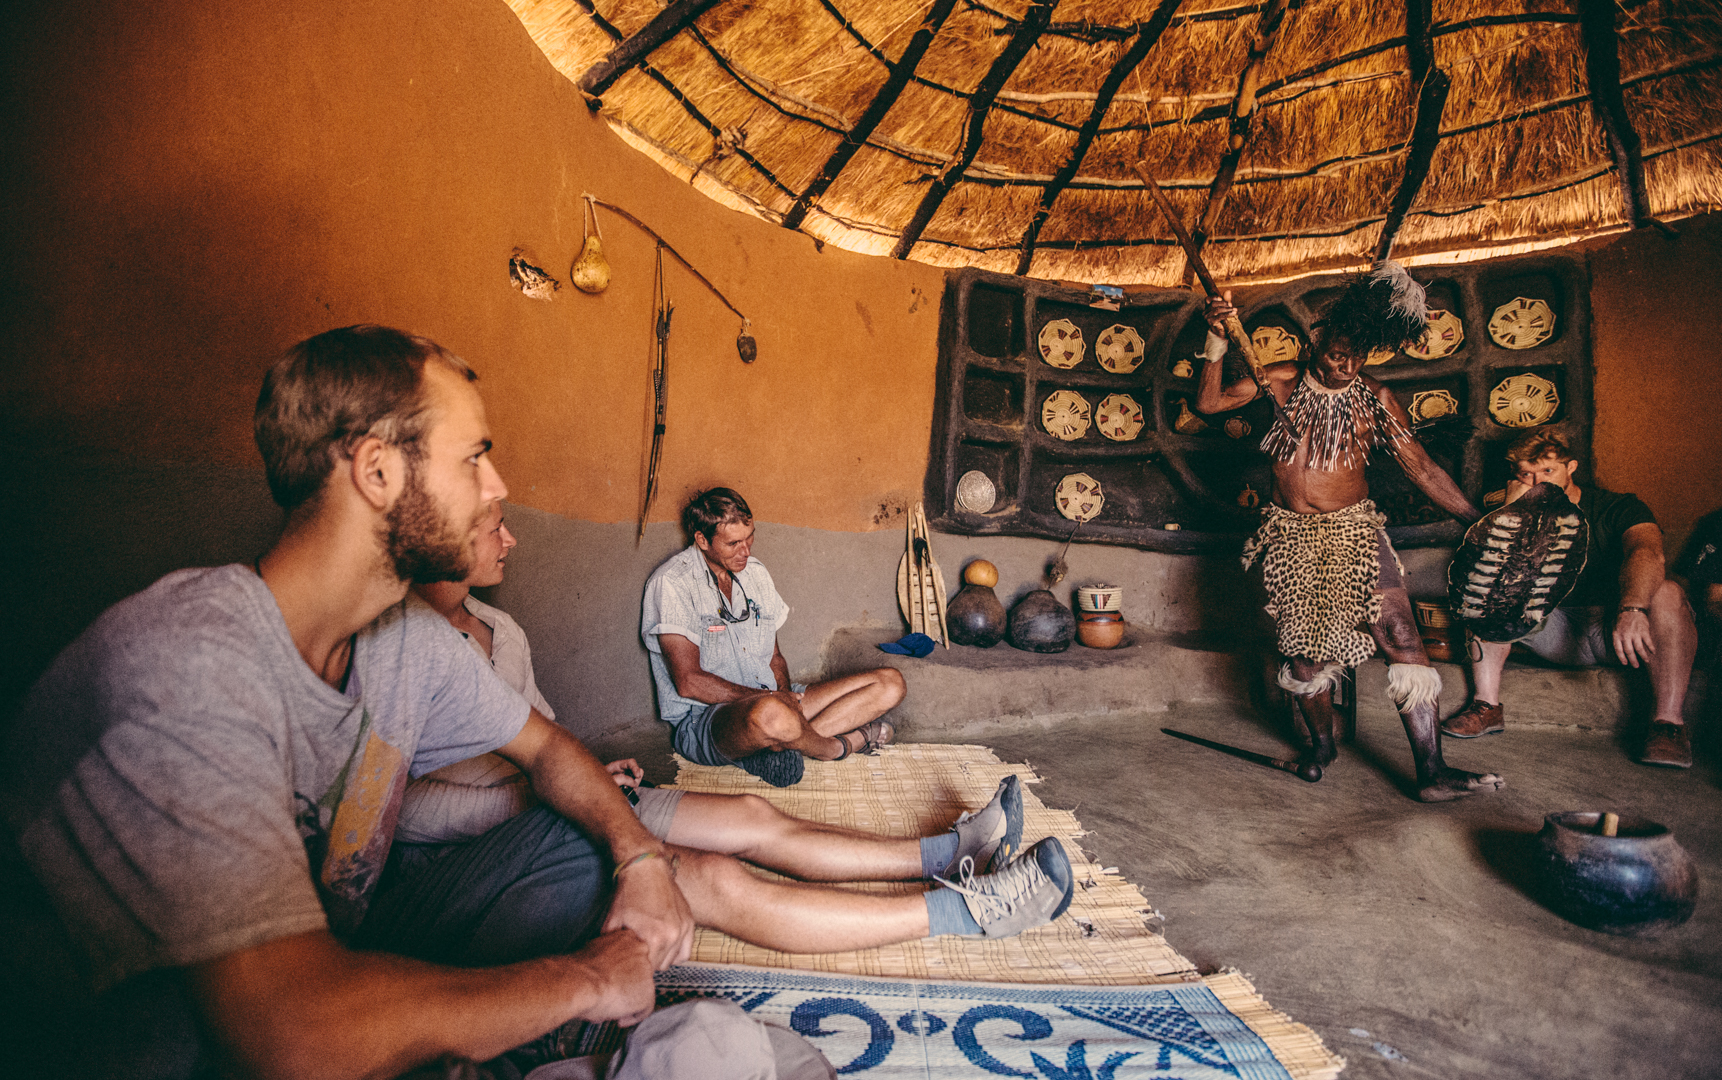 The stories told by local tribes in Matobo bring up the realities of surviving in the remote regions of Southern Africa.